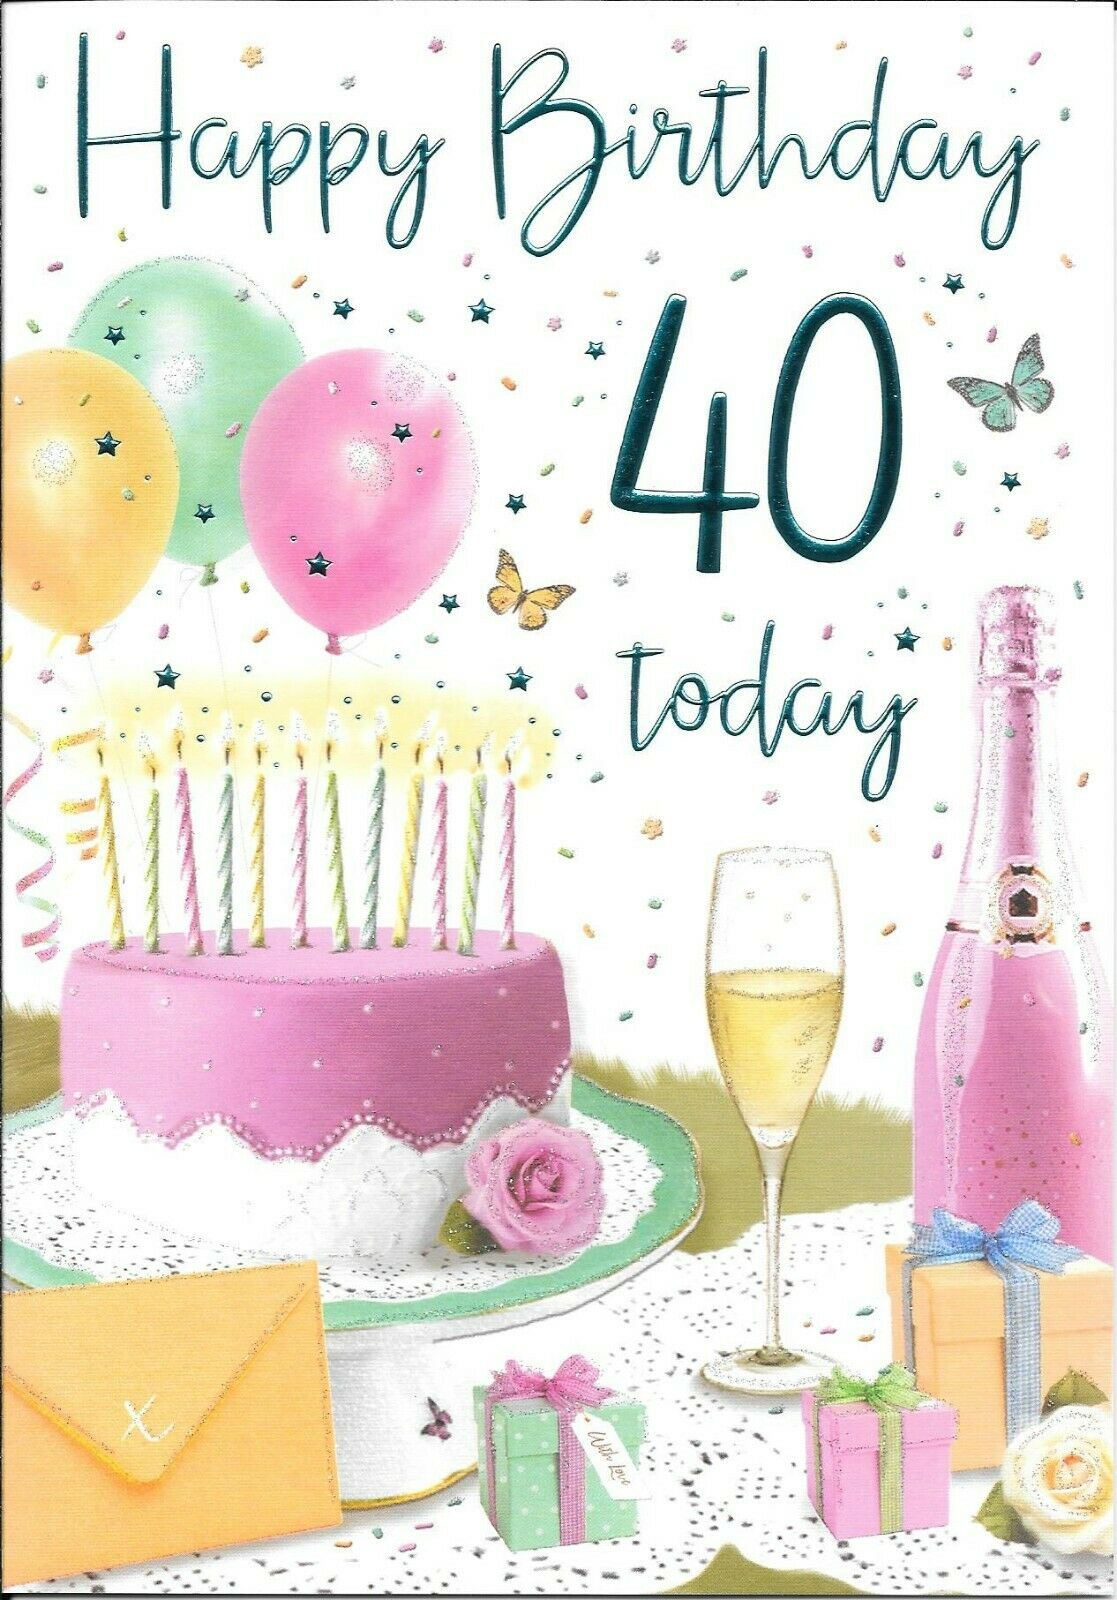 40th 40 Birthday Card Female Luxury Card Sentiment Verse Made In Uk R For Sale Online Ebay